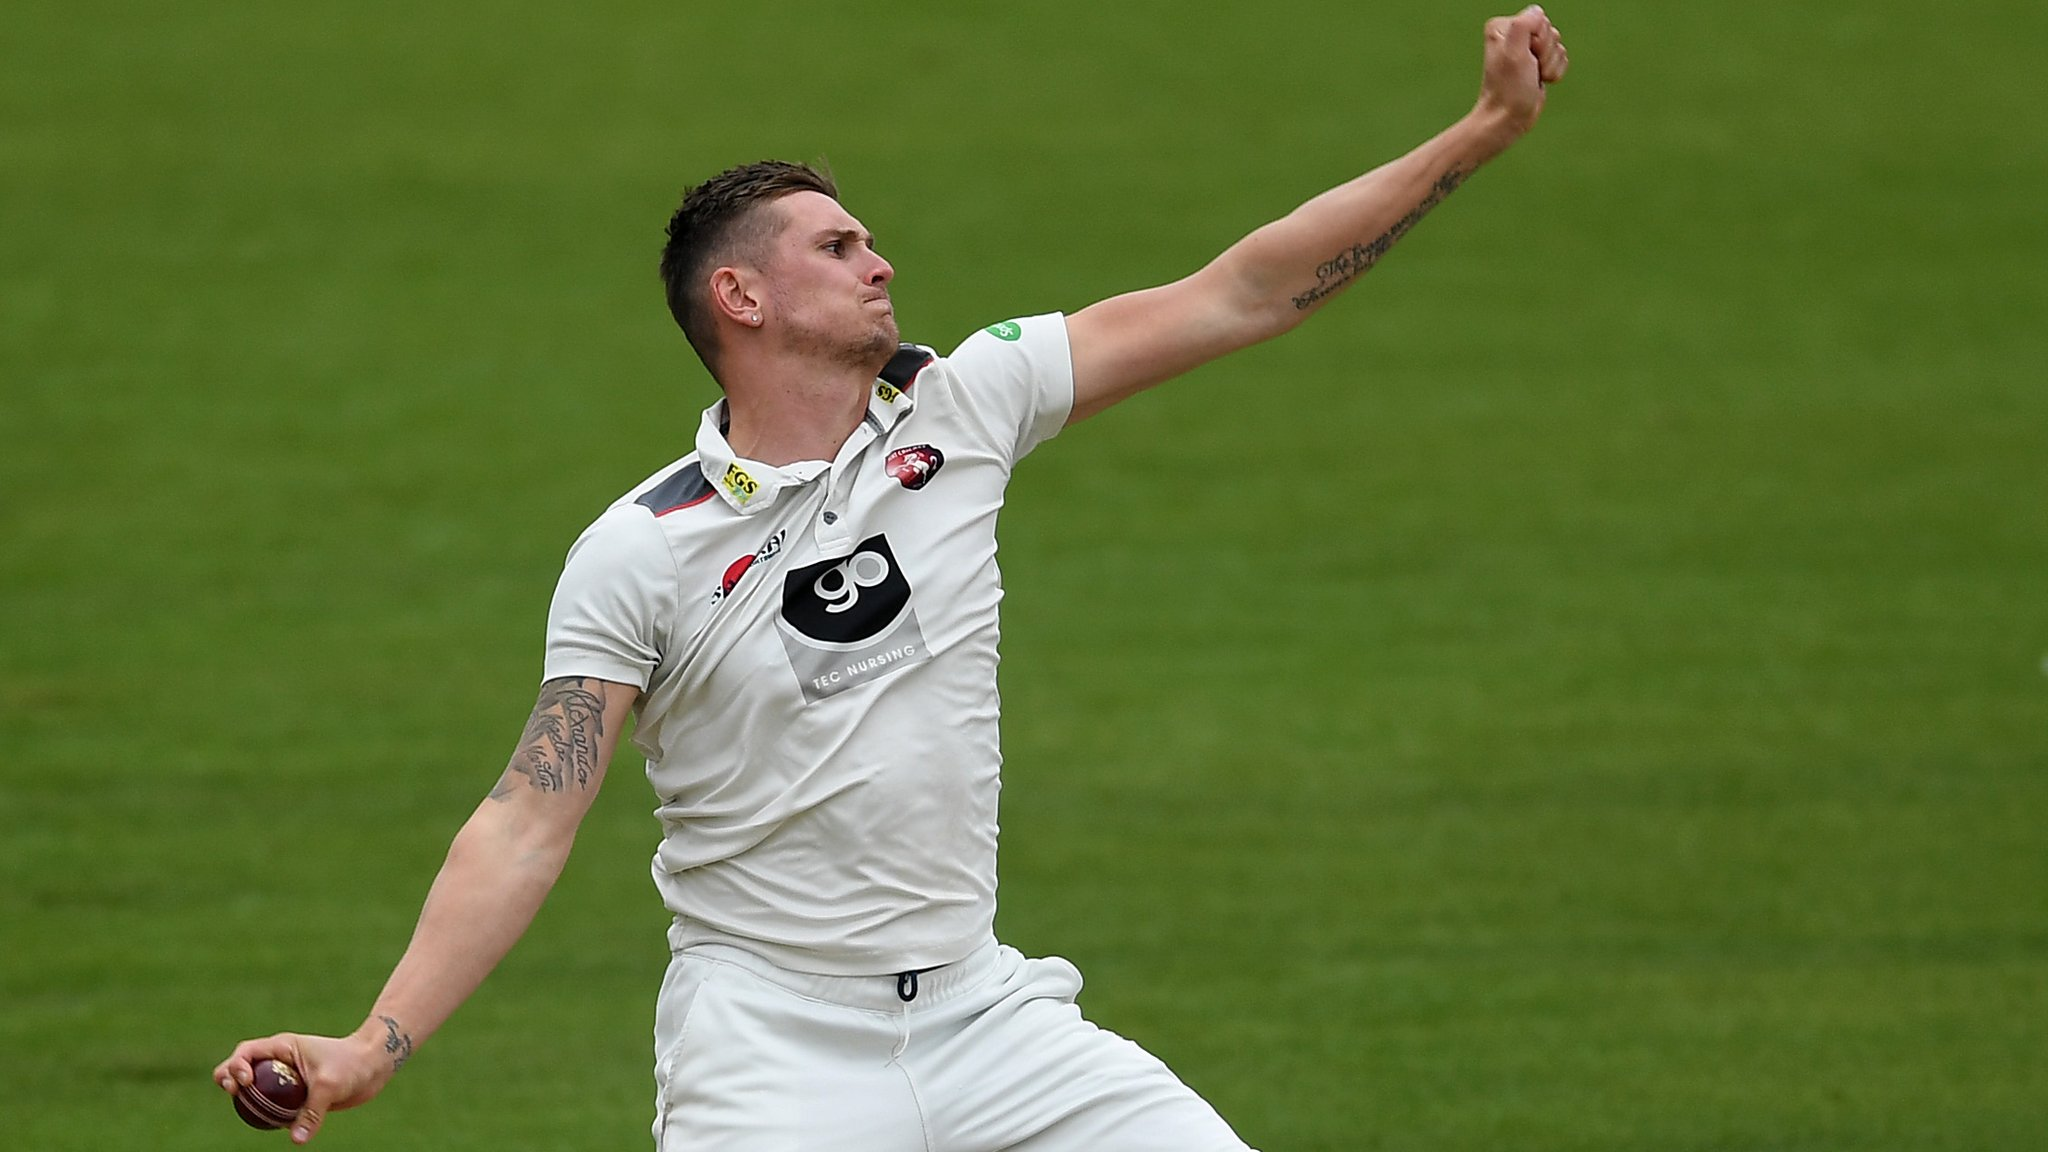 County Championship: Harry Podmore's five-wickets set up Kent win at Warwickshire